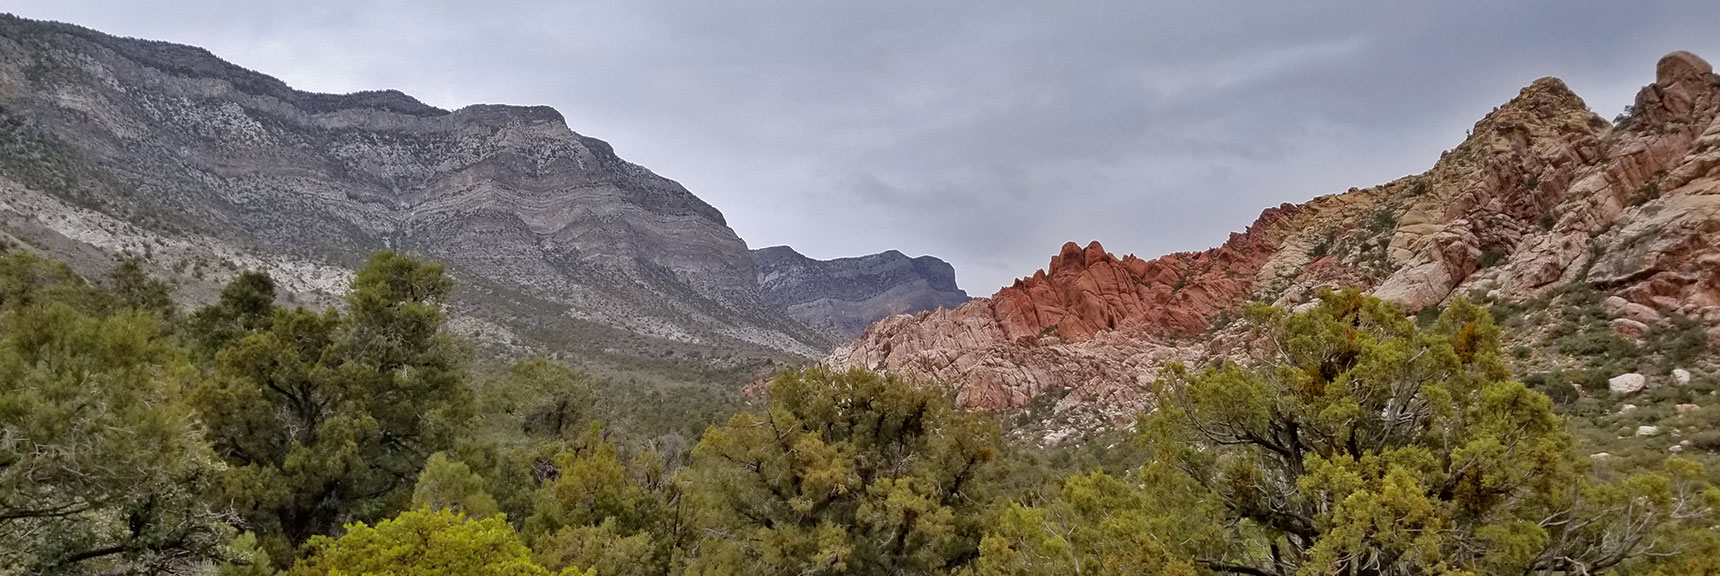 Looking Back at the Keystone Thrust and White Rock Mountain from White Rock Mountain Loop in Red Rock Park, Nevada